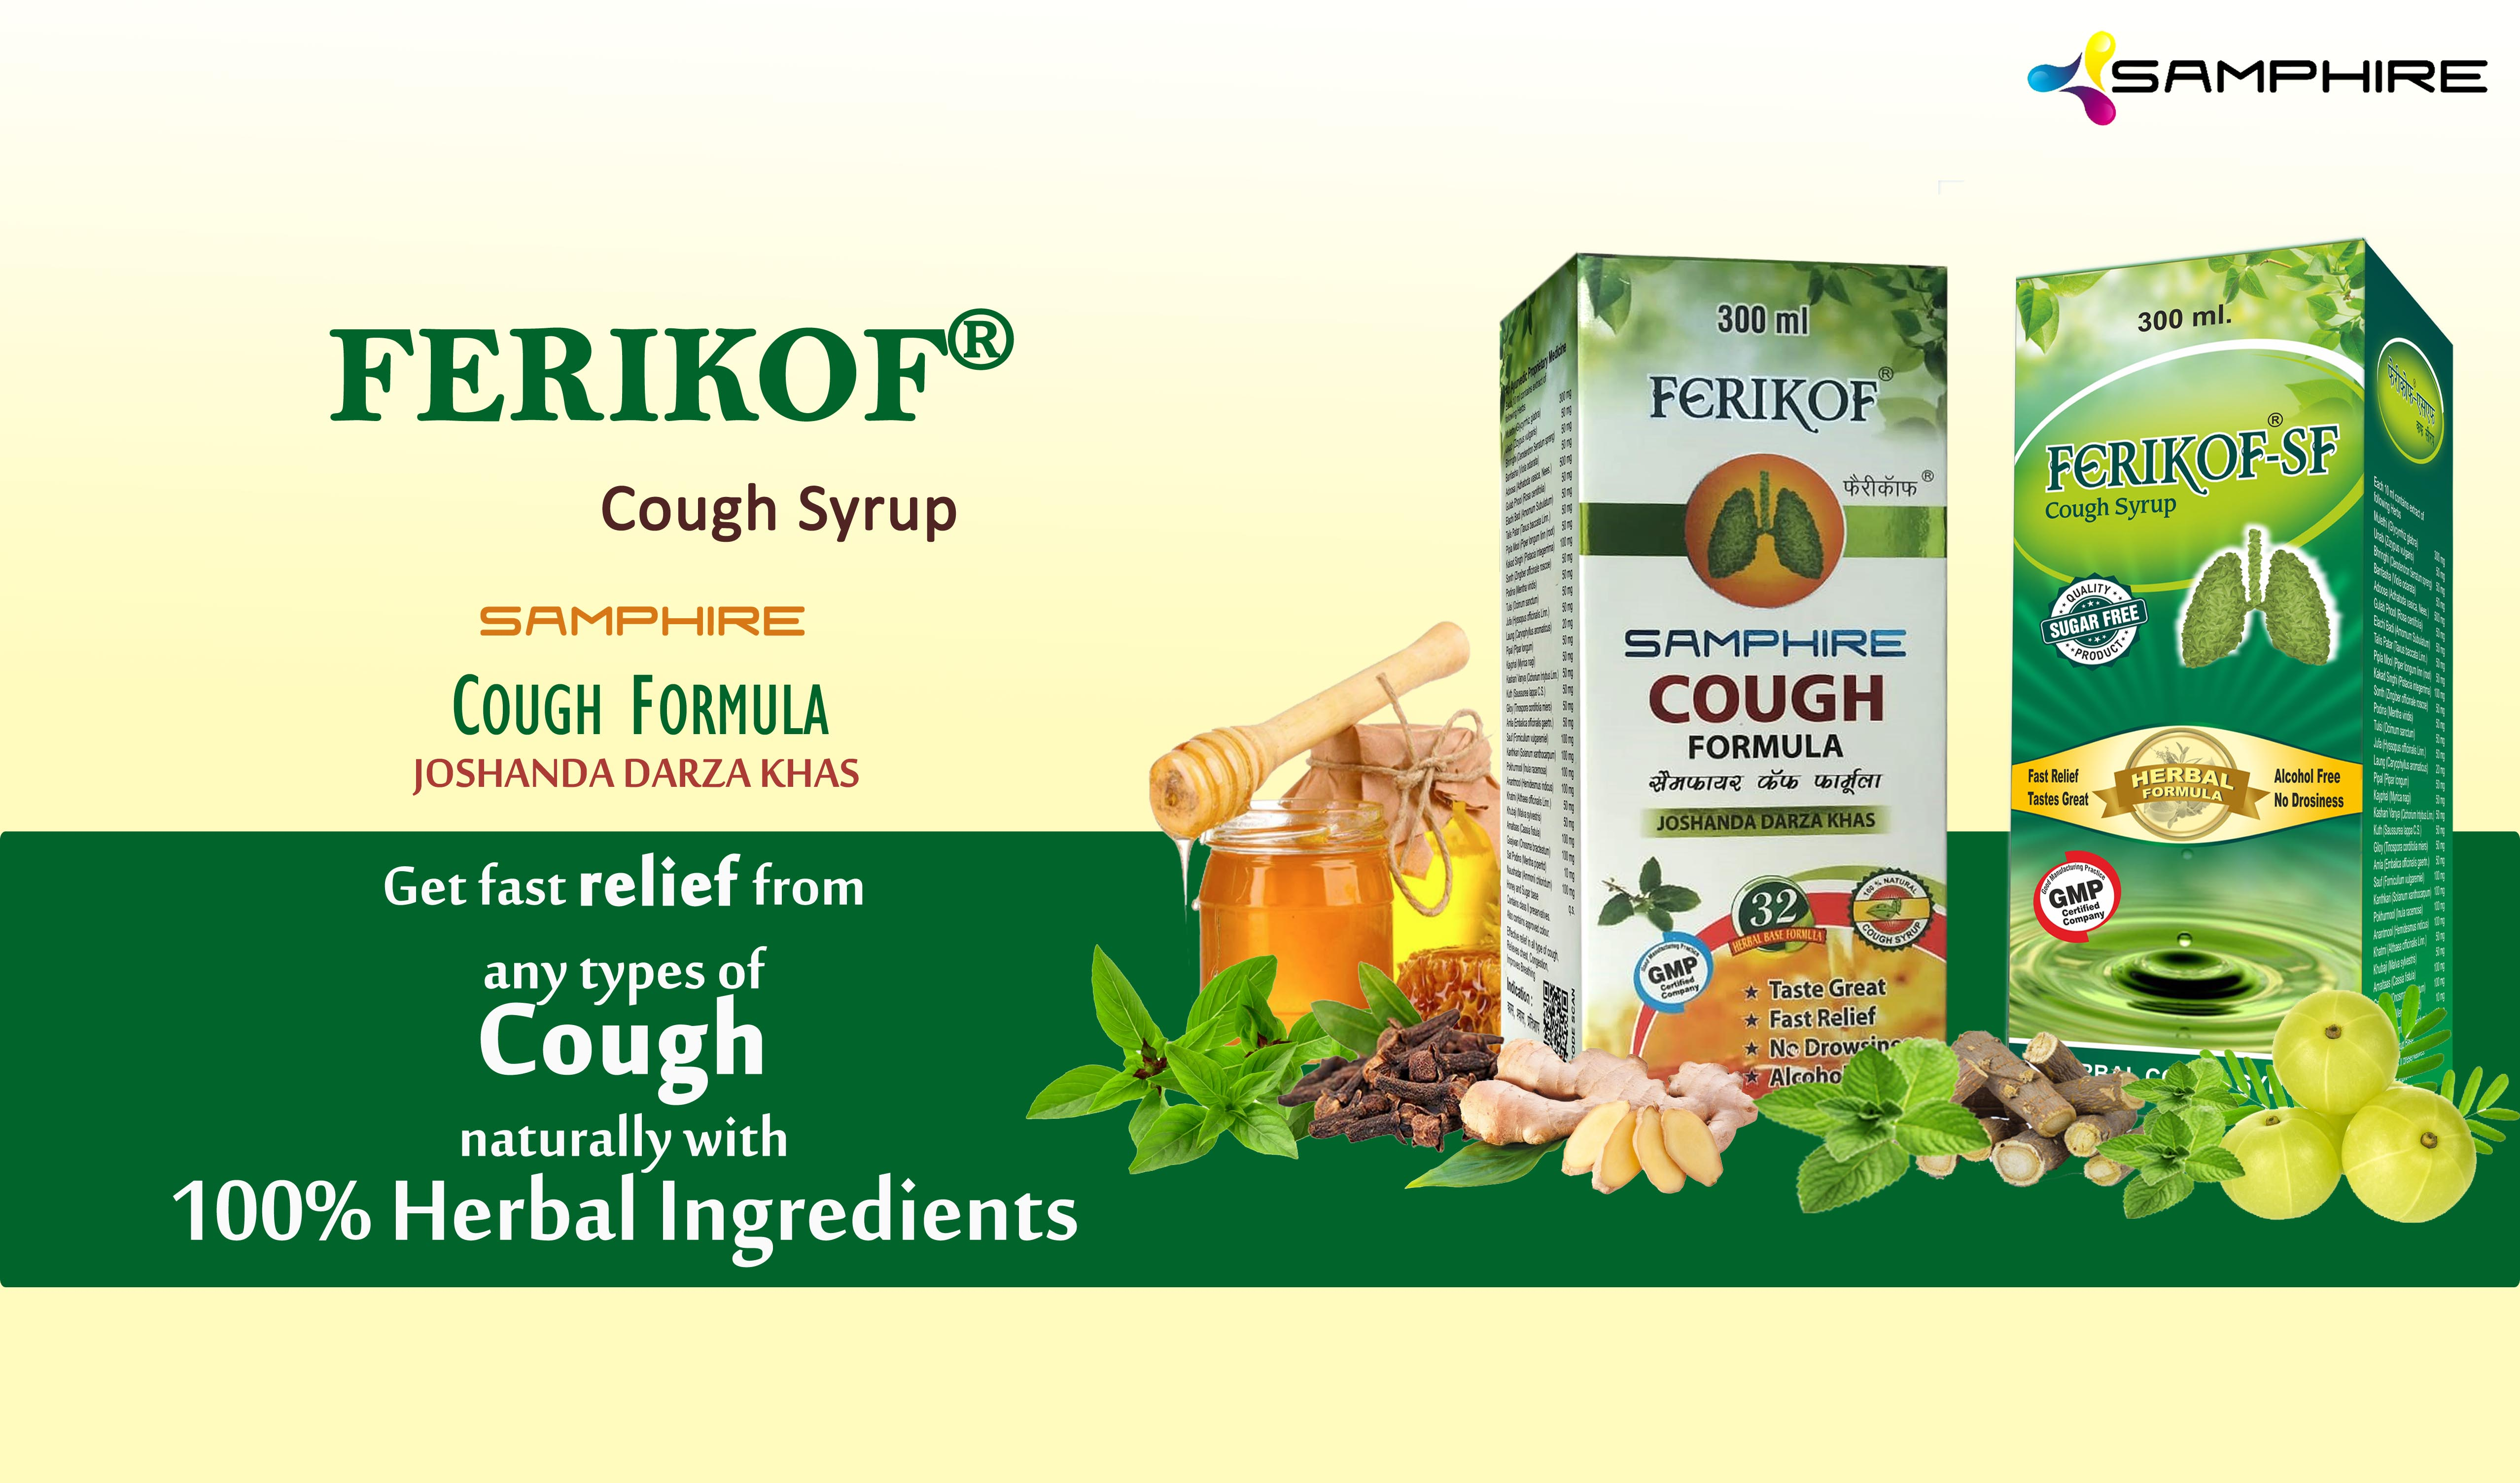 Ferikof Cough Syrup / Ferikof-SF Cough Syrup